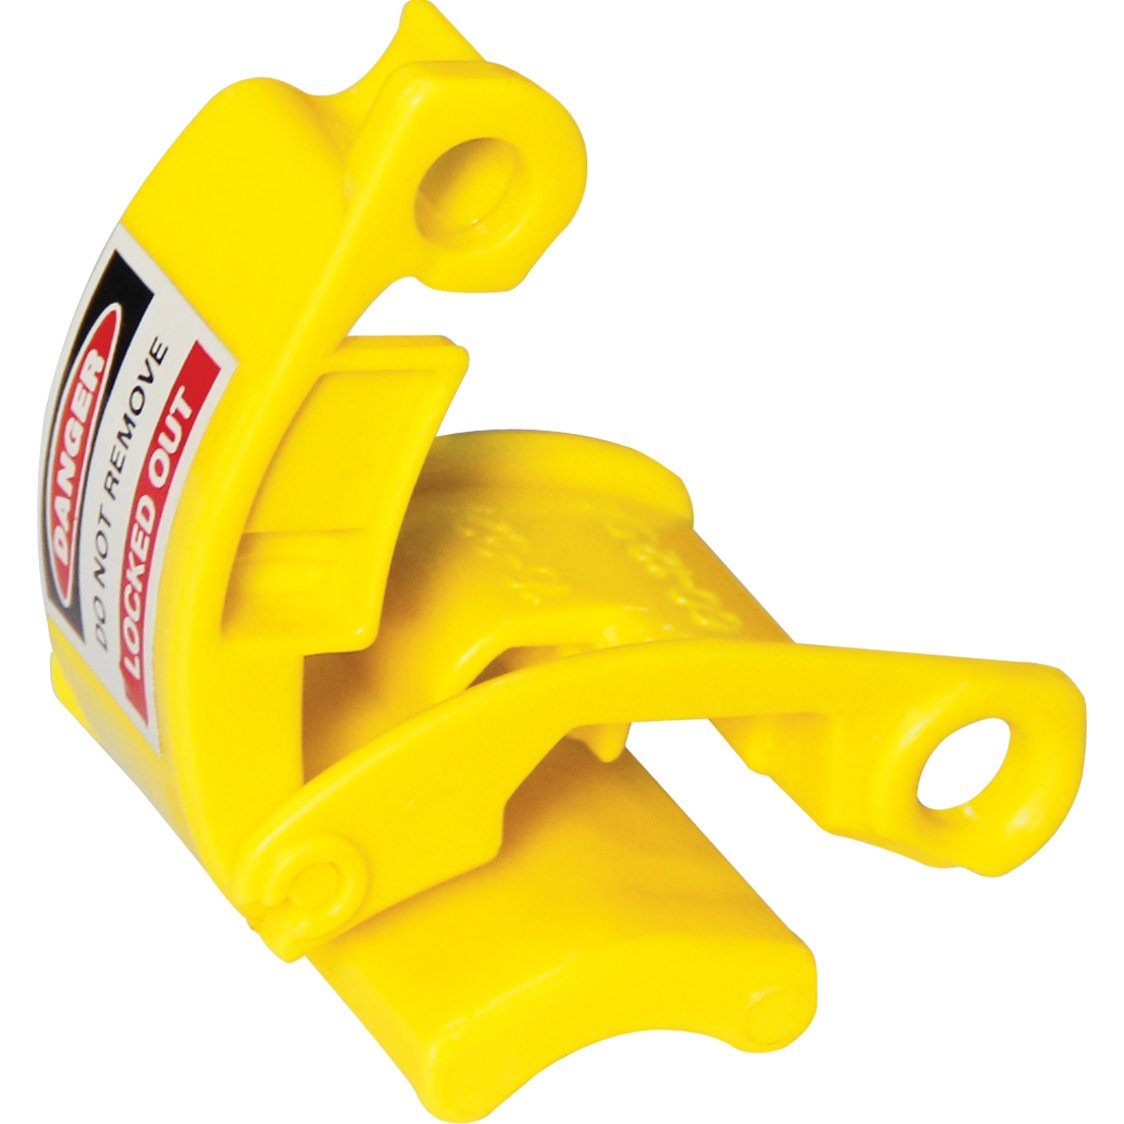 Lockout Safety Supply 7268 Pin and Sleeve - Plug Lockout, Yellow by Lockout Safety Supply